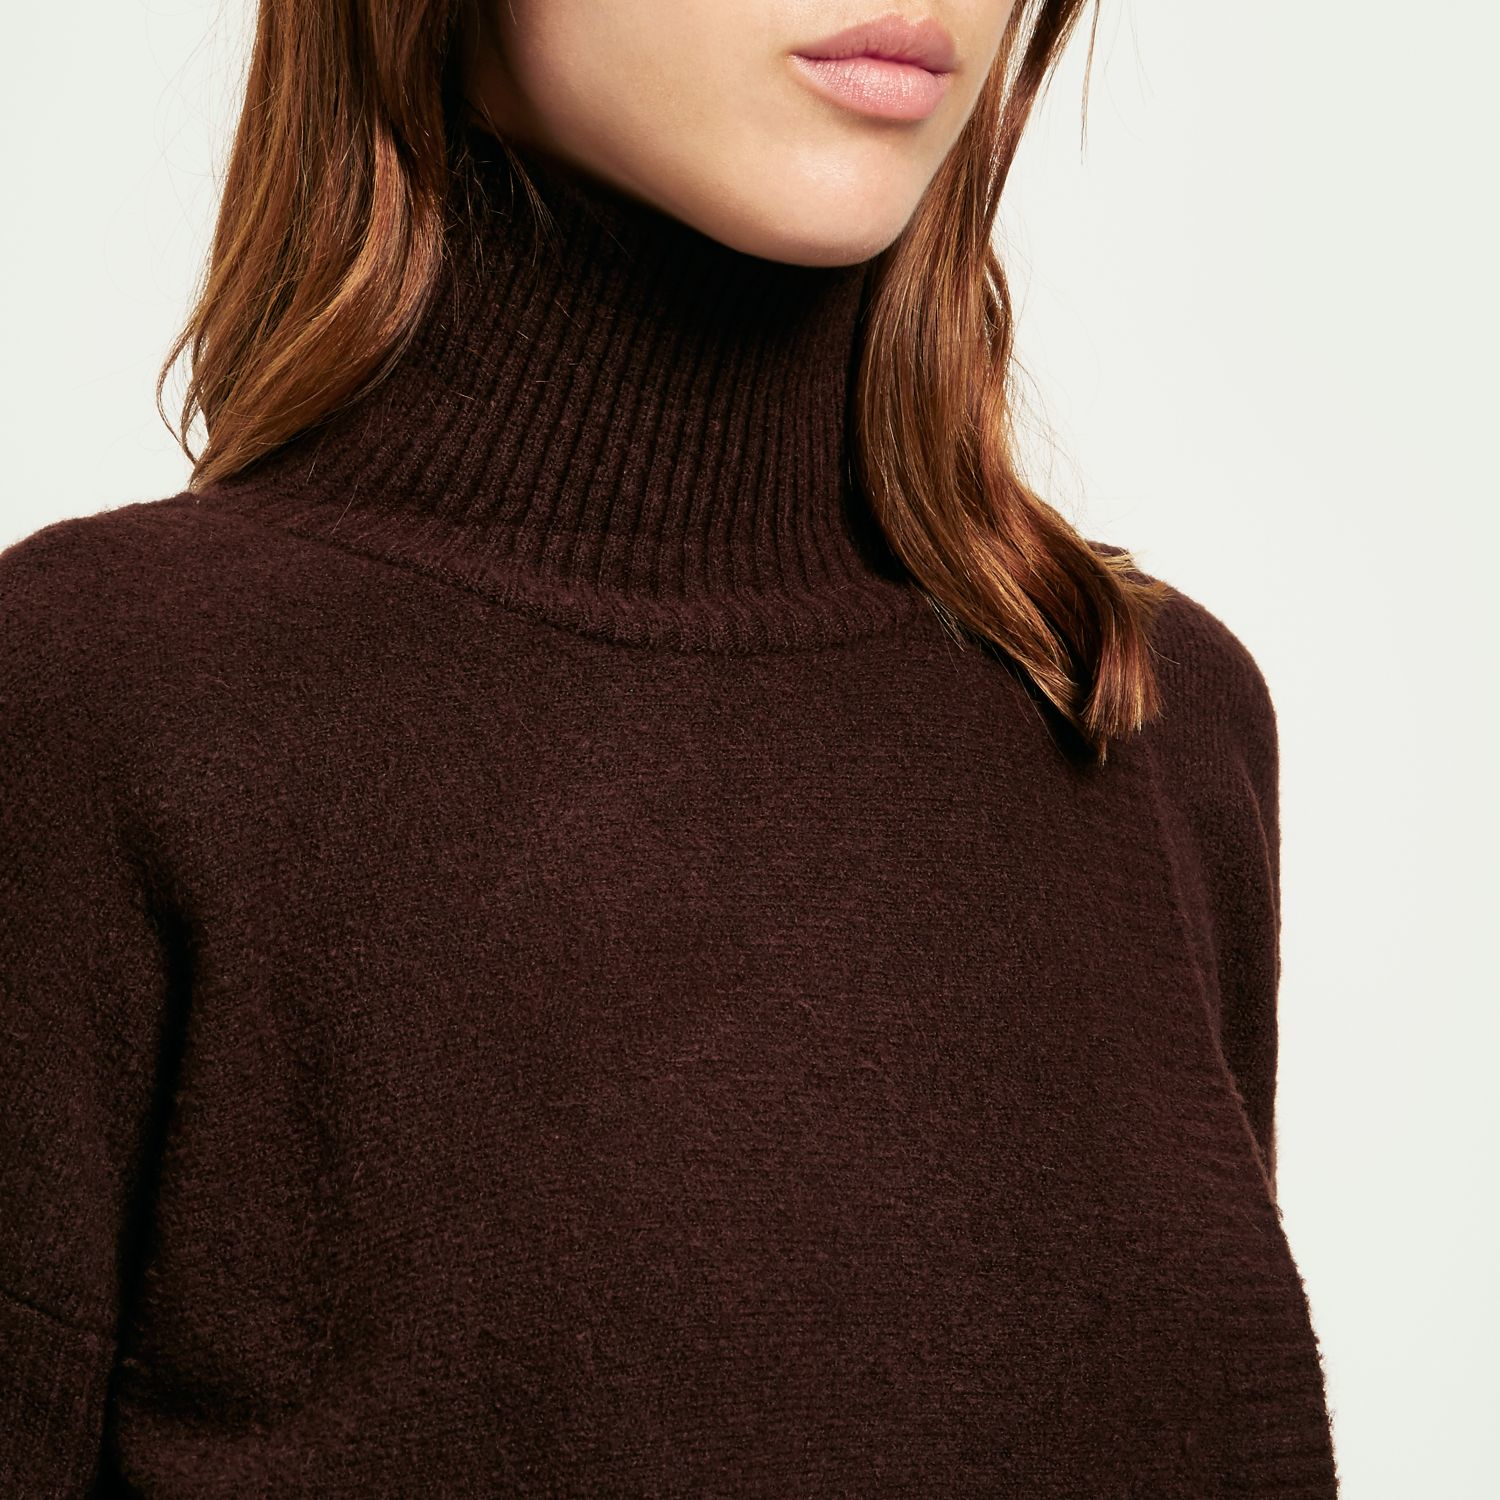 Lyst River Island Chocolate Brown Asymmetric Knitted Jumper In Brown